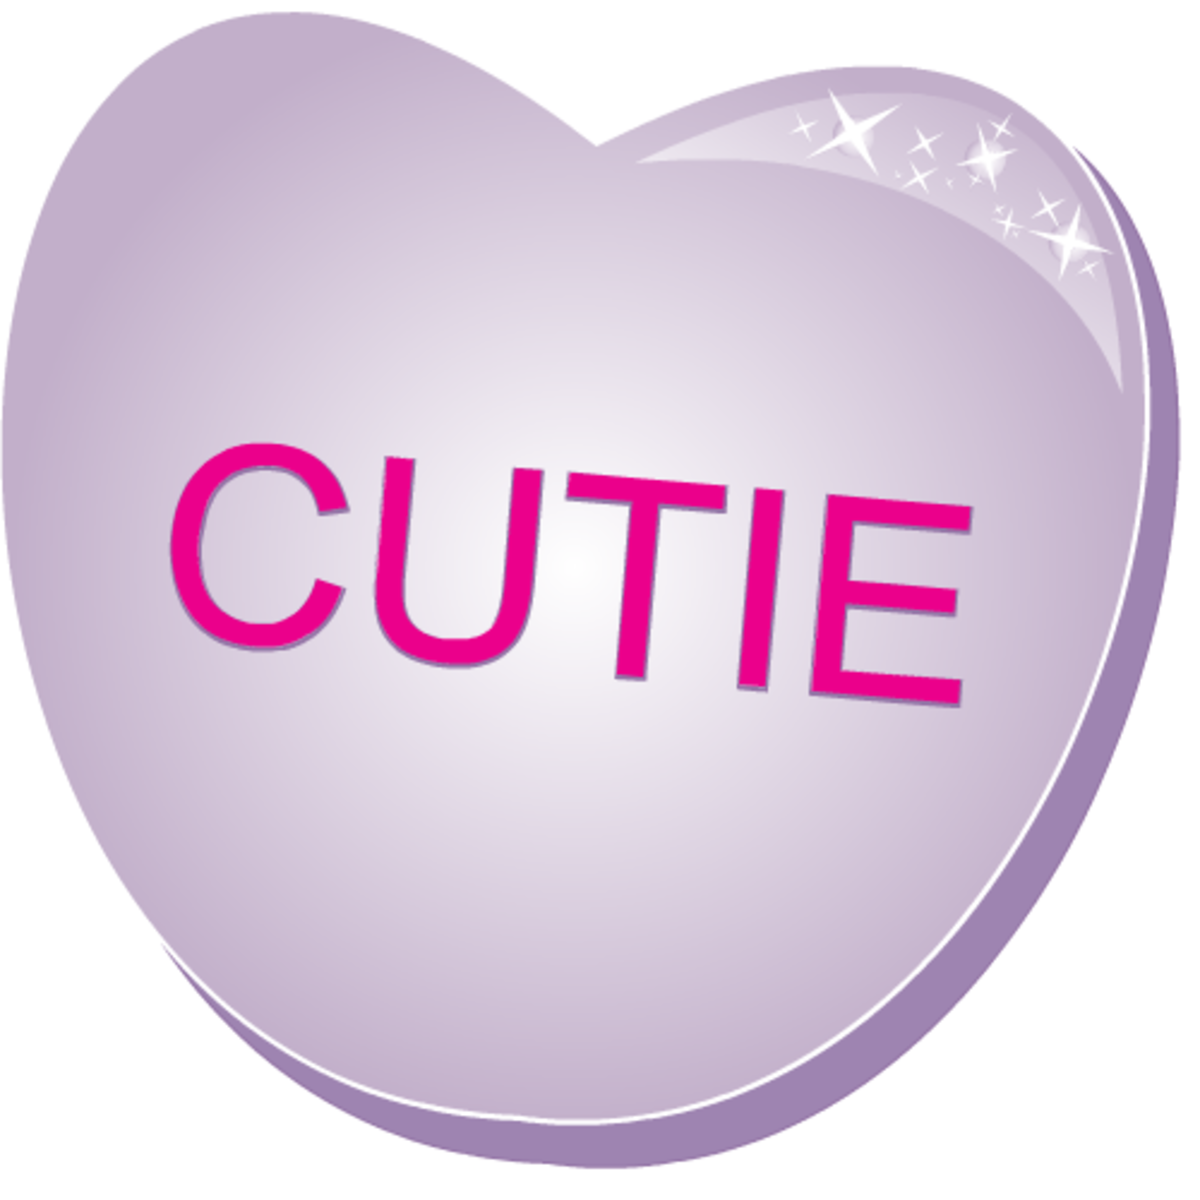 Free valentine clip art: Cutie purple candy heart